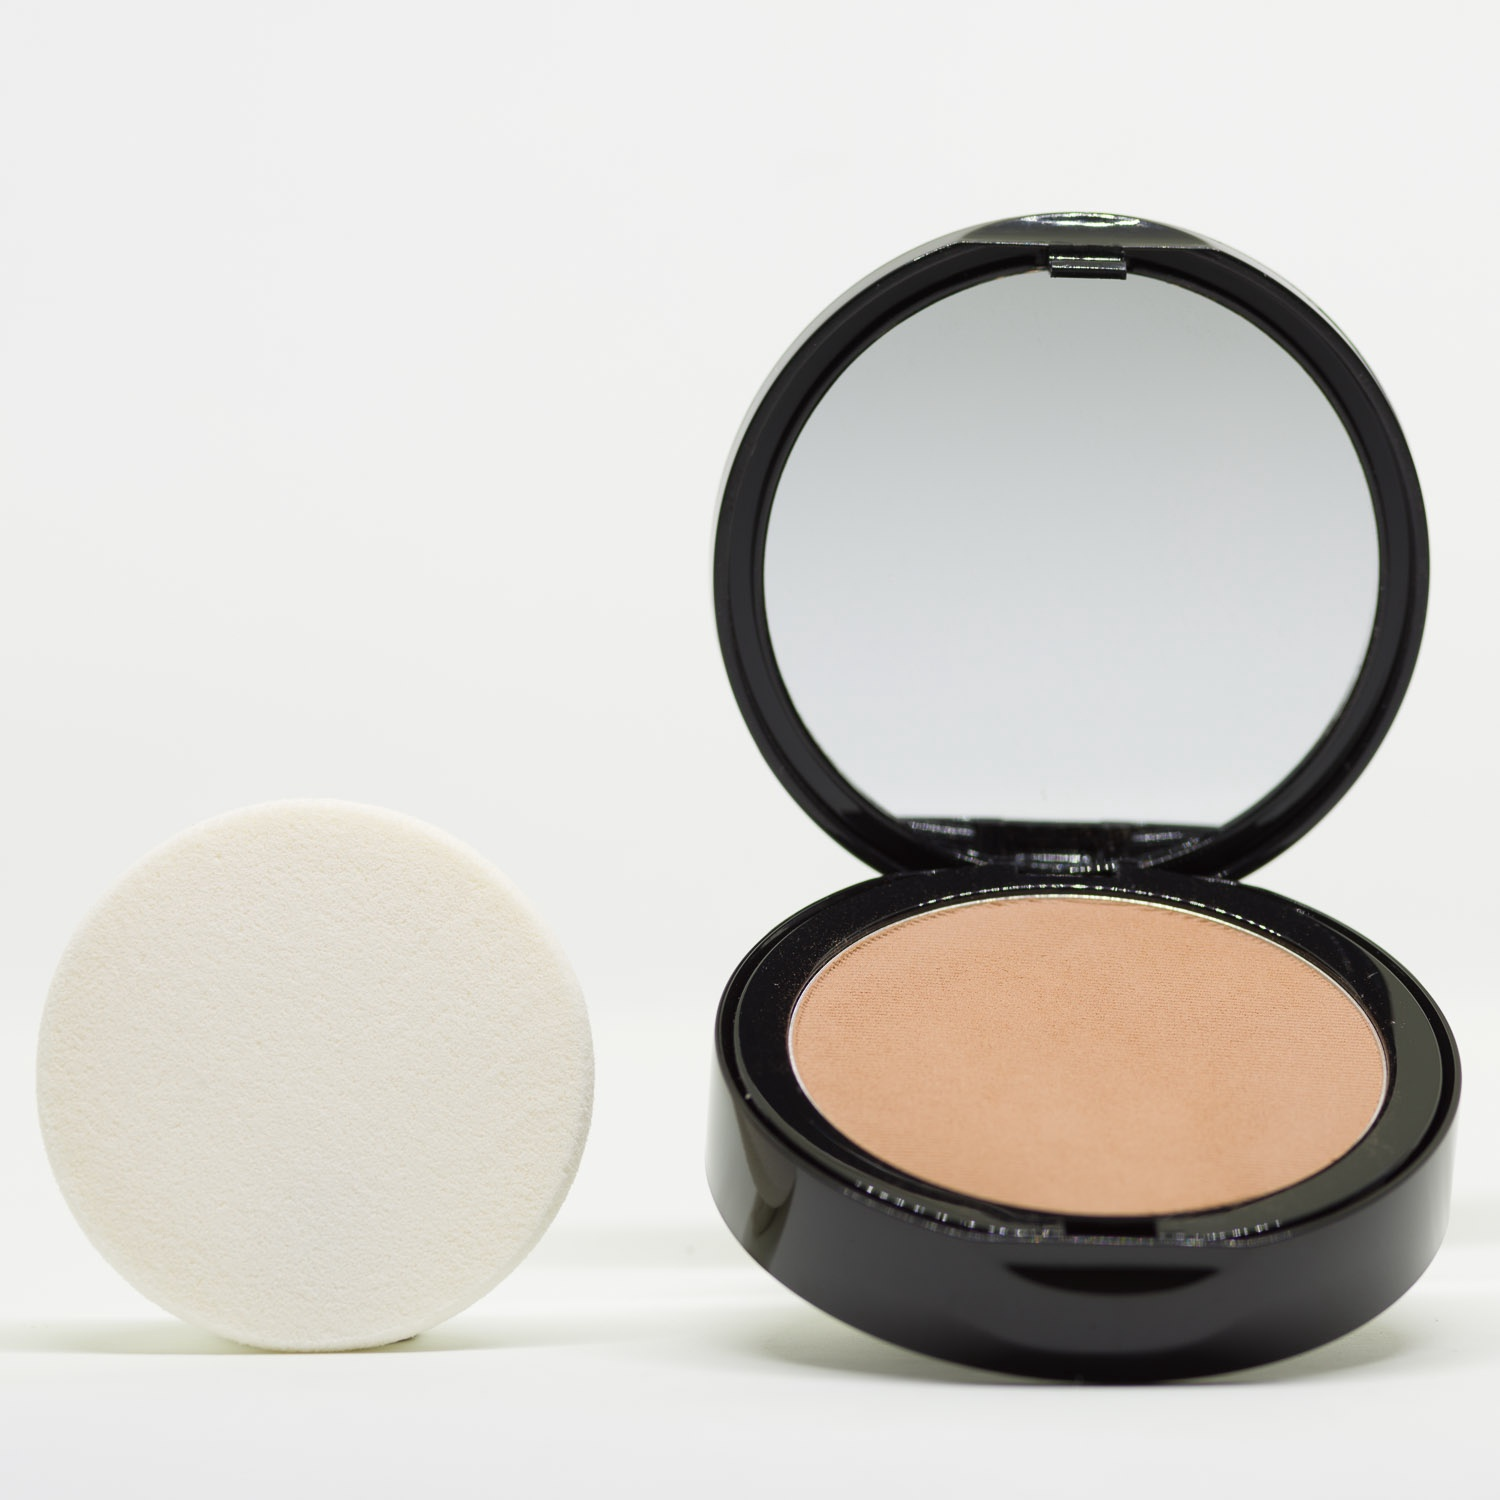 PN7 Cool Neutral Pressed Powder Mineral Foundation